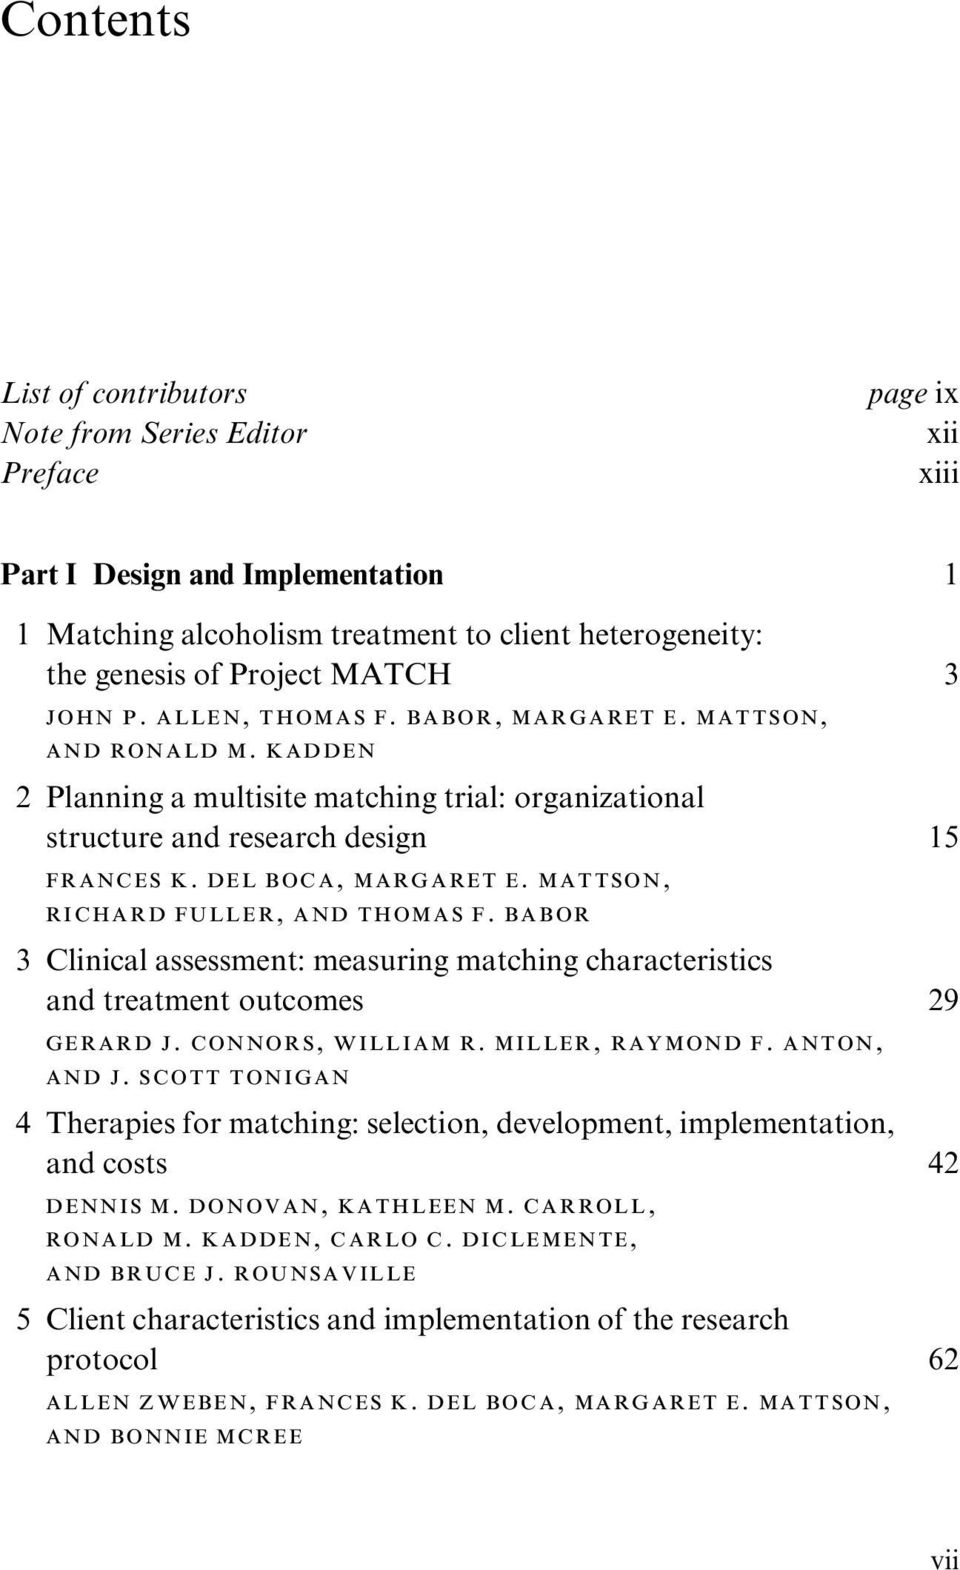 MATTSON, RICHARD FULLER, AND THOMAS F. BABOR 3 Clinical assessment: measuring matching characteristics and treatment outcomes 29 GERARD J. CONNORS, WILLIAM R. MILLER, RAYMOND F. ANTON, AND J.